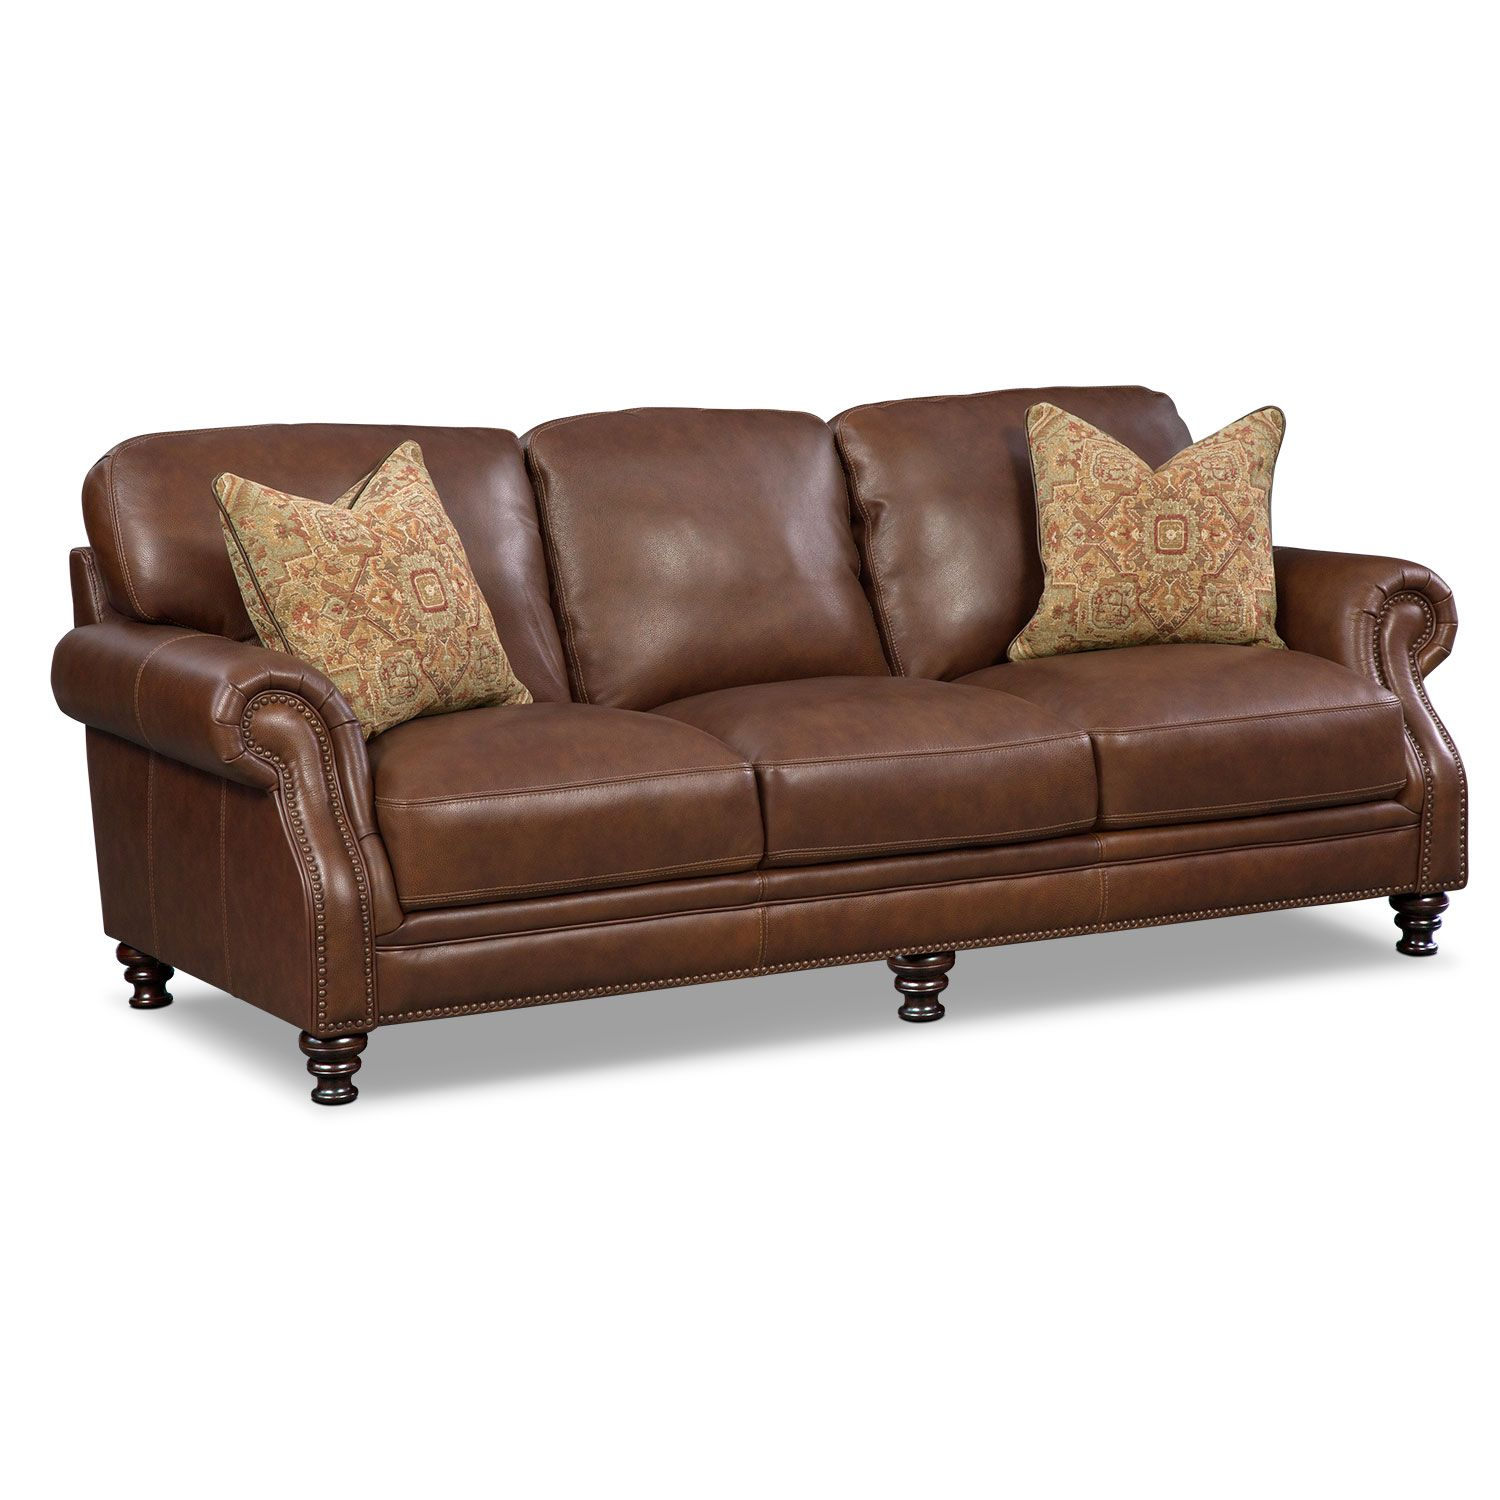 Living Room Furniture Carrington Tobacco Sofa